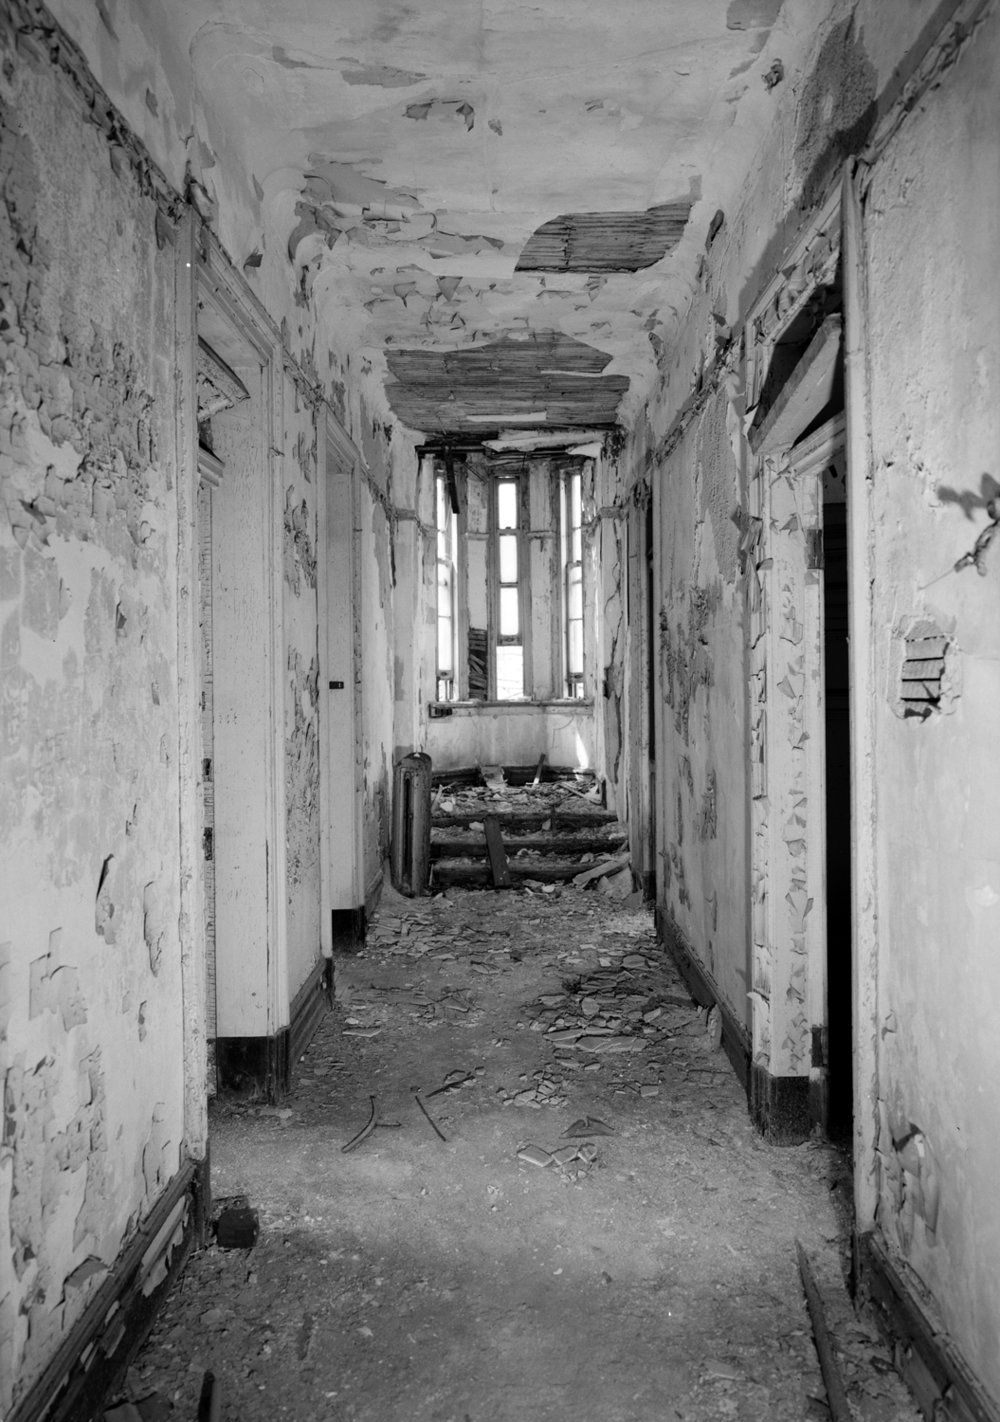 An interior corridor of the building circa 1980. By 1980 the building had already been vacant for 30 years. The interiors of the Smallpox Hospital have since been stripped of walls and architectural details.